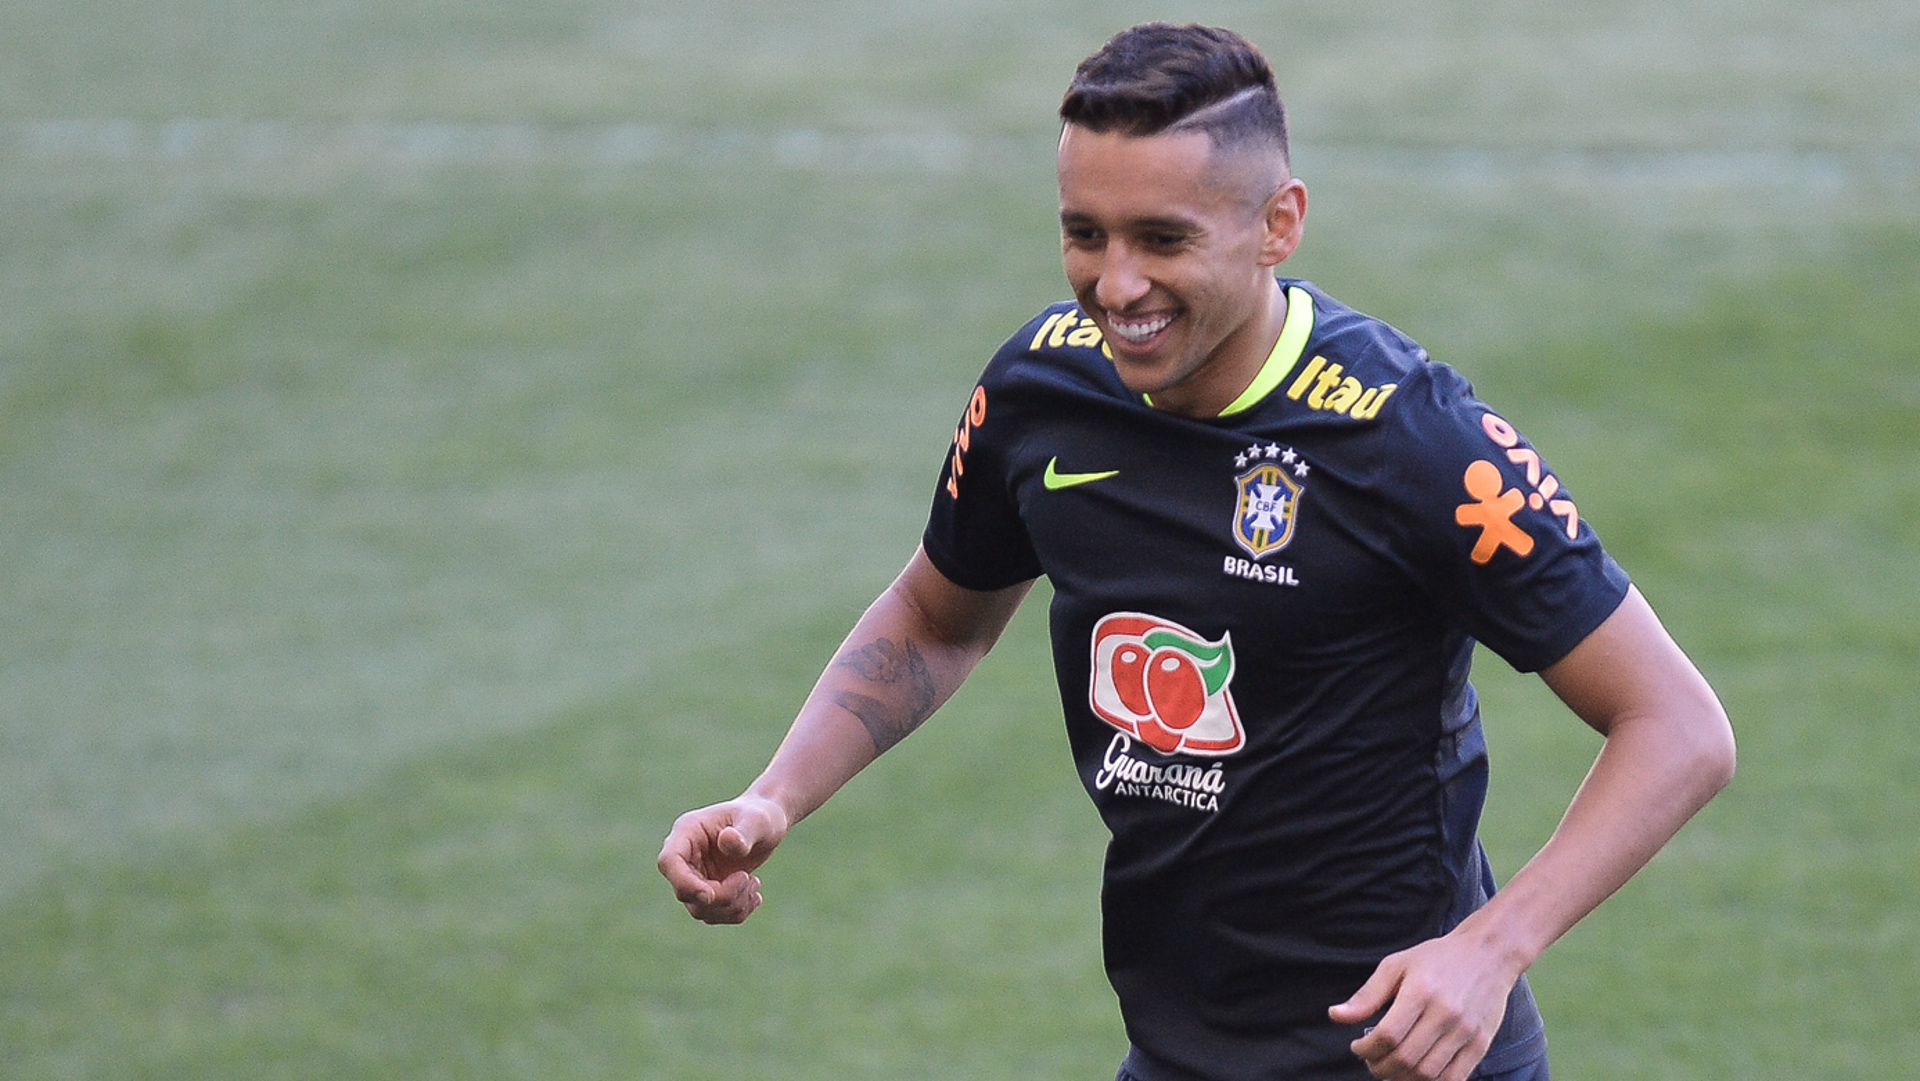 Marquinhos Tite has made all the difference for Brazil Goal